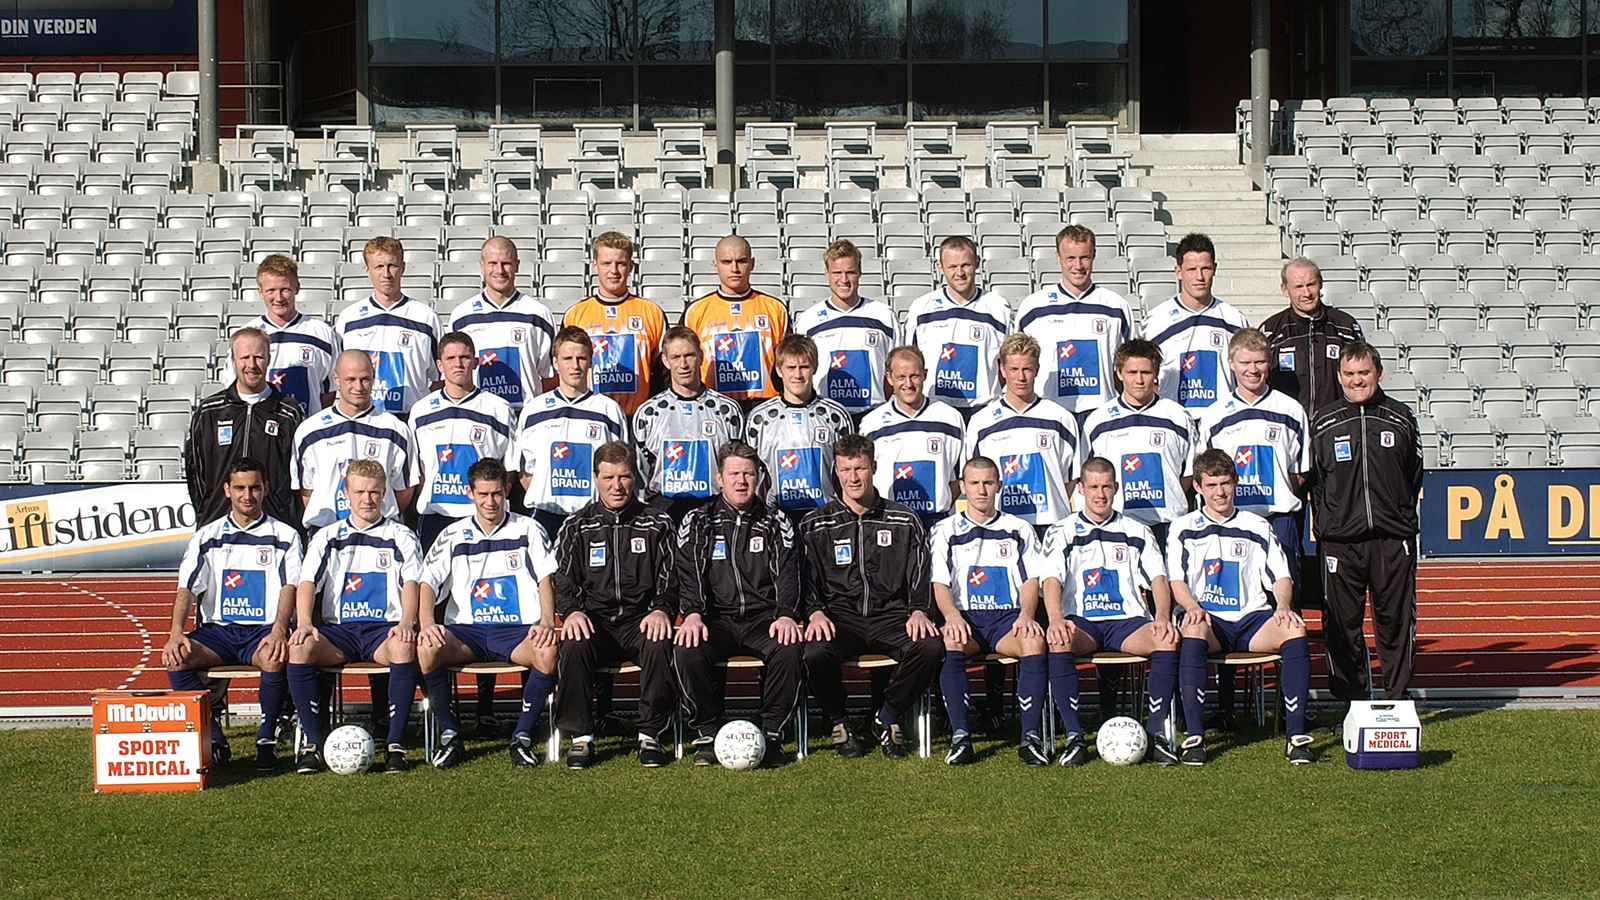 Image - The AGF Aarhus team photo from that season with Doyle and Miller sitting front row to the right. Pho